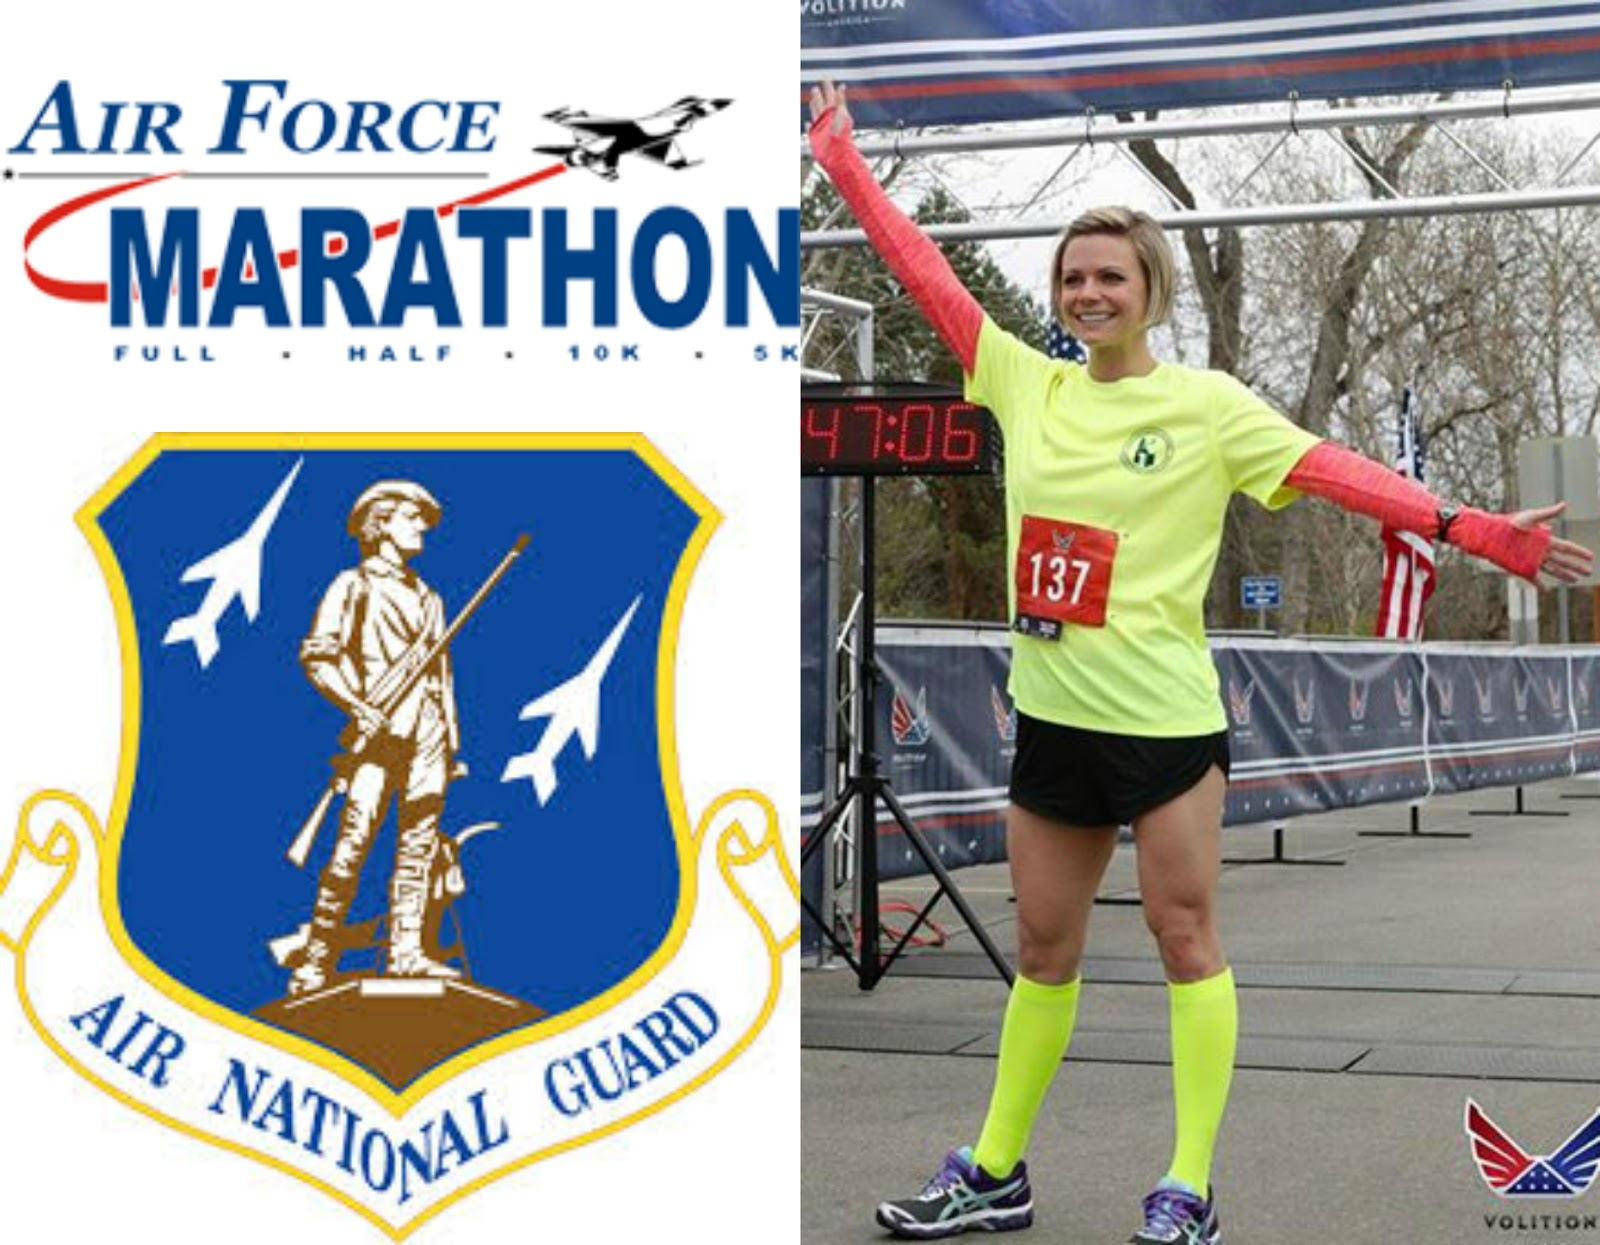 Air Force Half Marathon, Air Force MAJCOM Challenge, Idaho Air National Guard Runner, 124 Fighter Wing